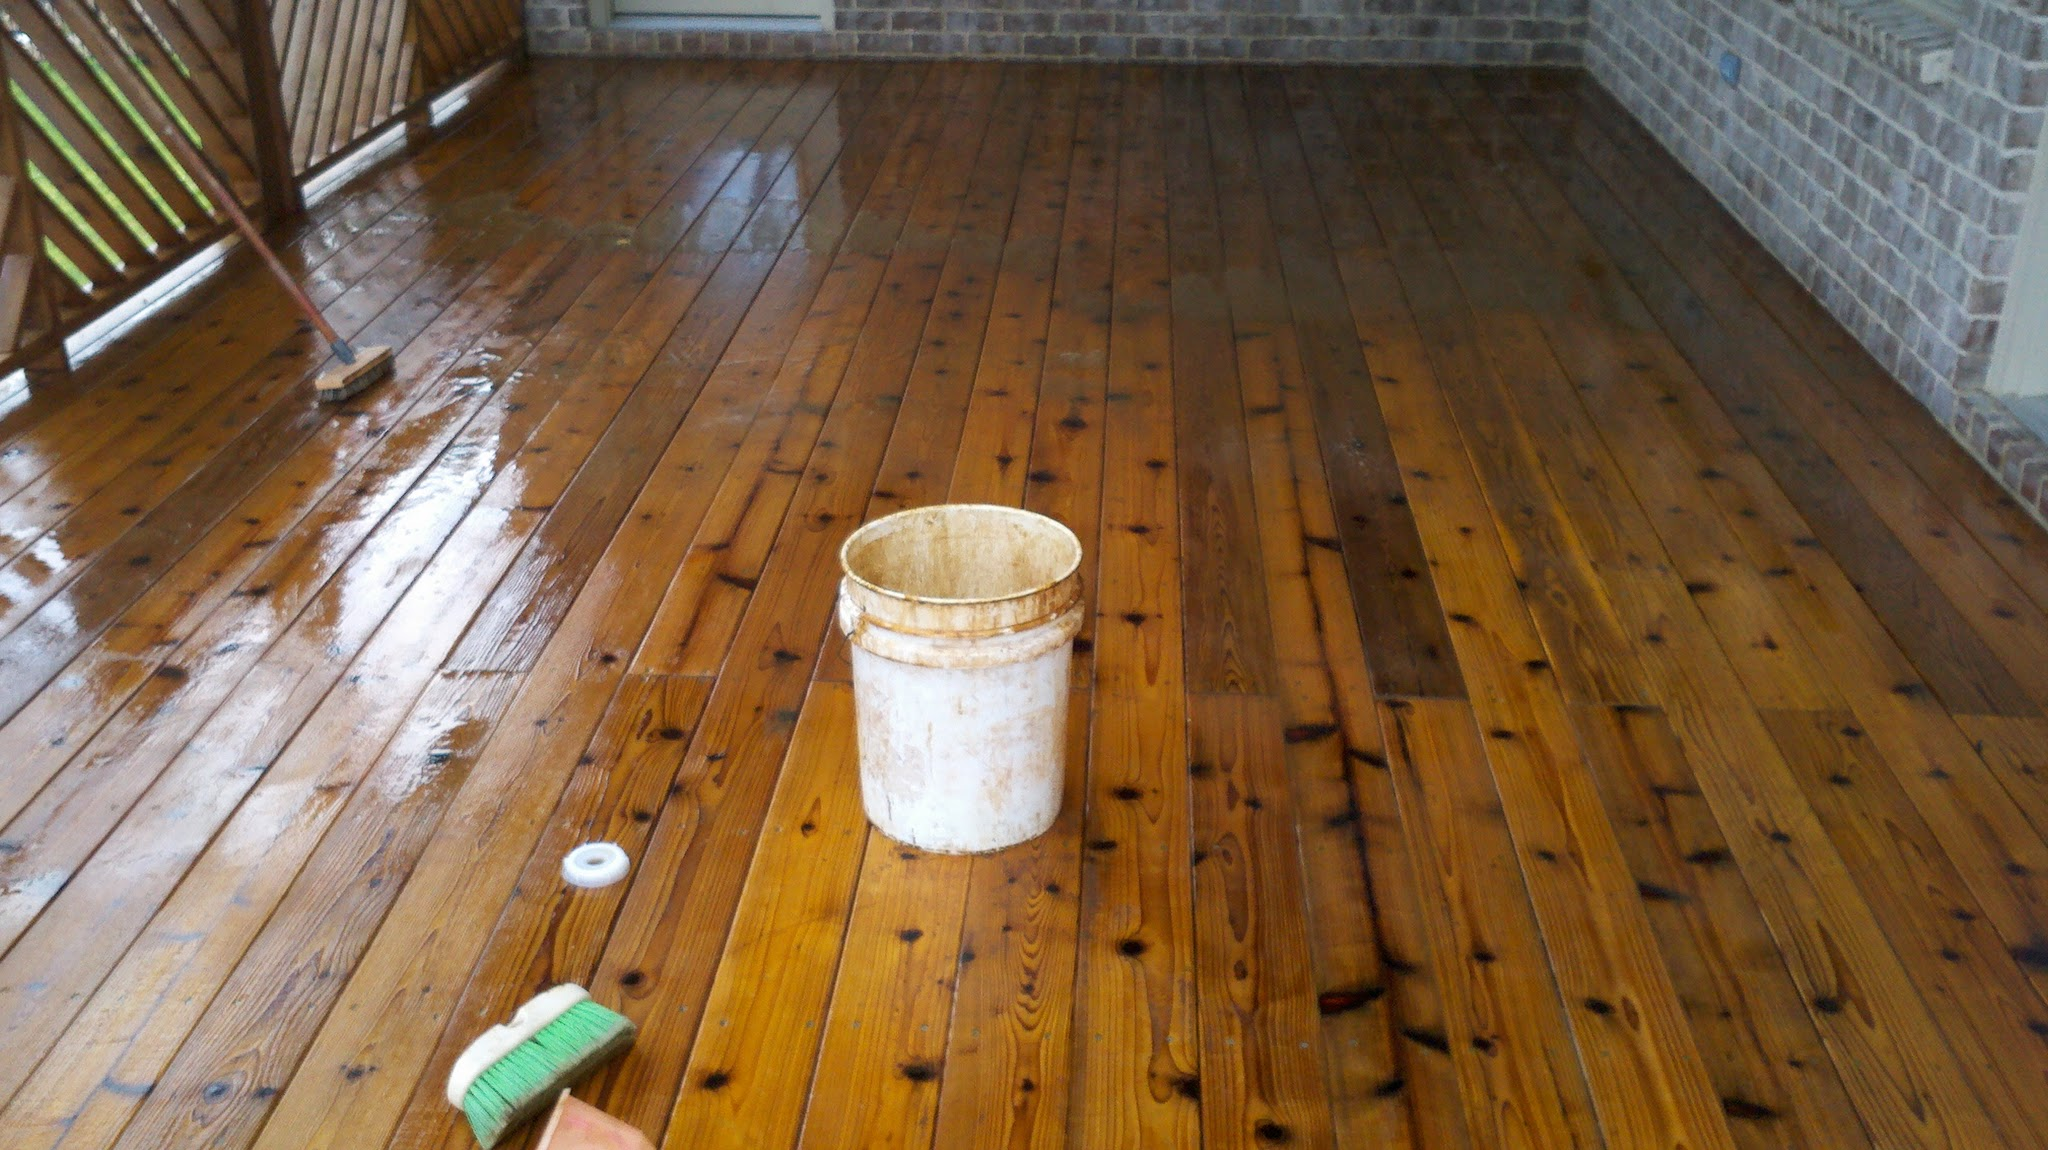 This photo shows deck stain removal in progress